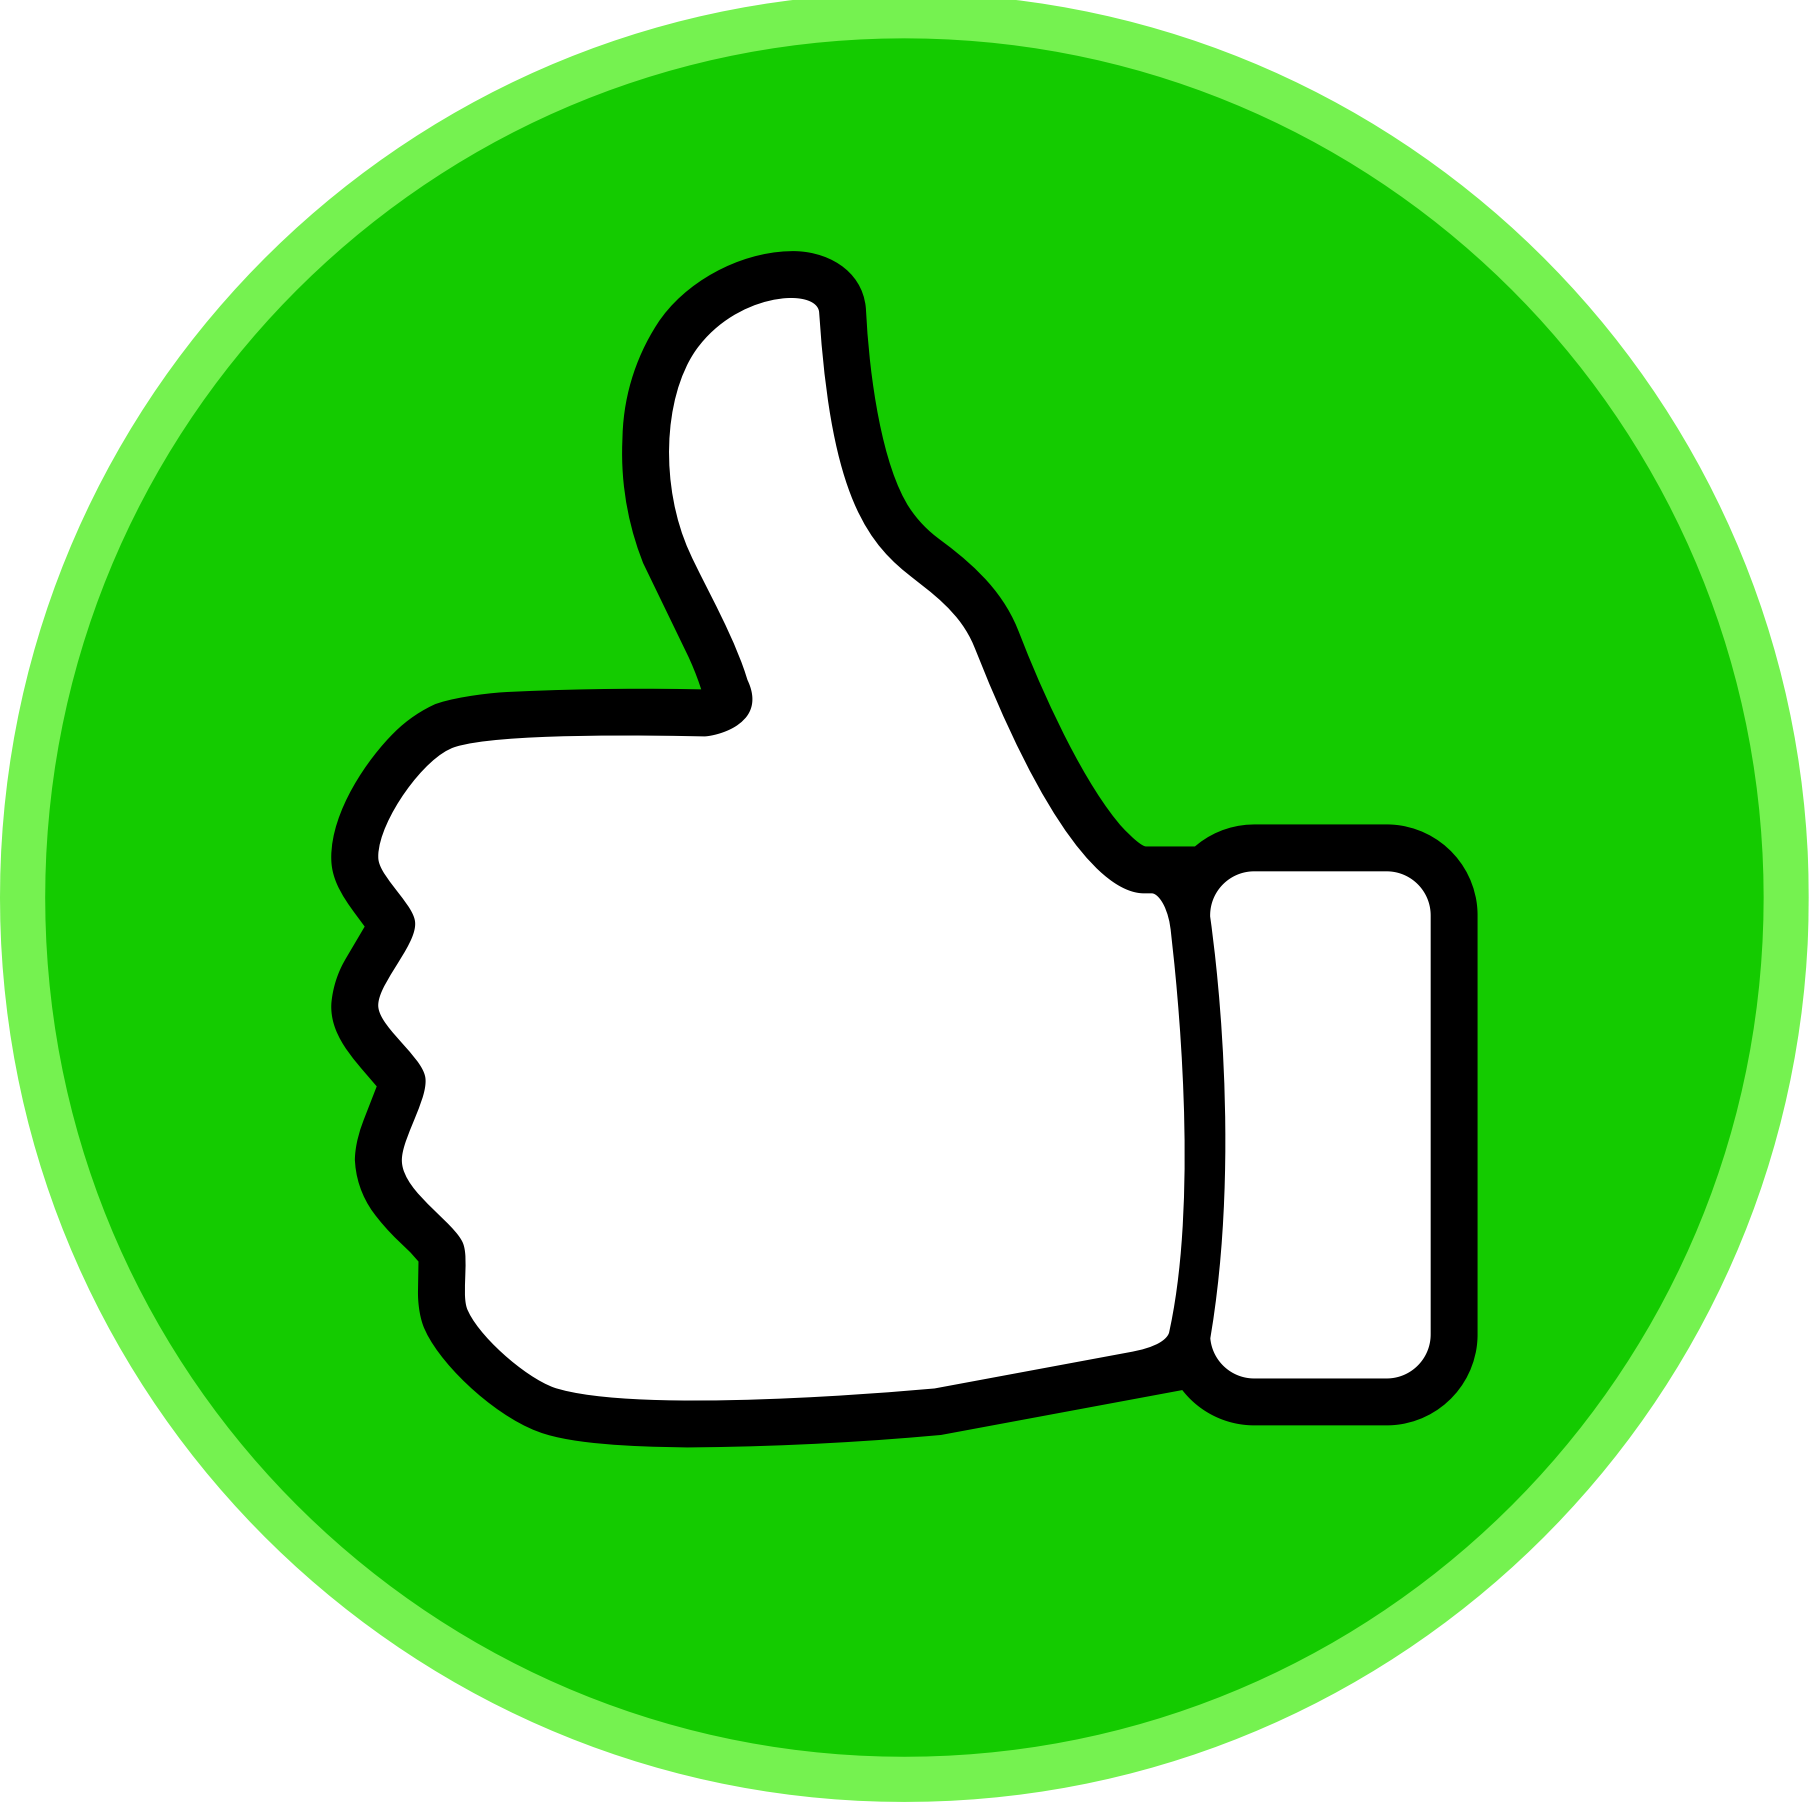 Thumbs up thumbs down clipart free graphic transparent Thumbs up clipart 2 - Clipartix graphic transparent